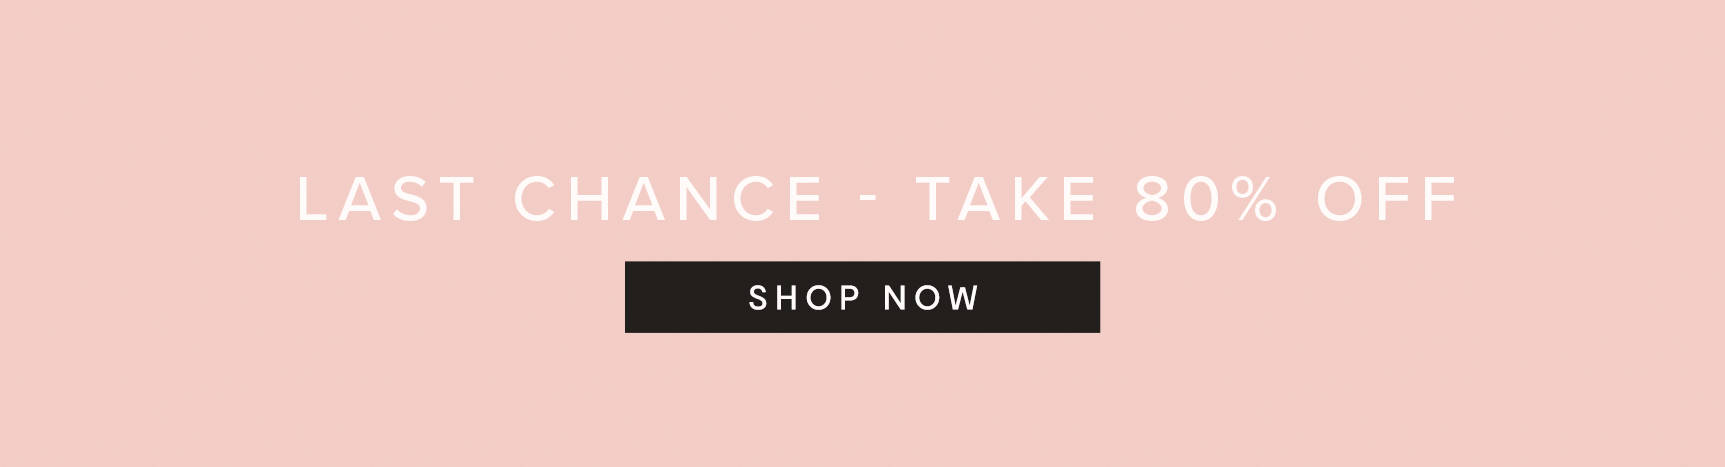 Last Chance - Take 80% Off